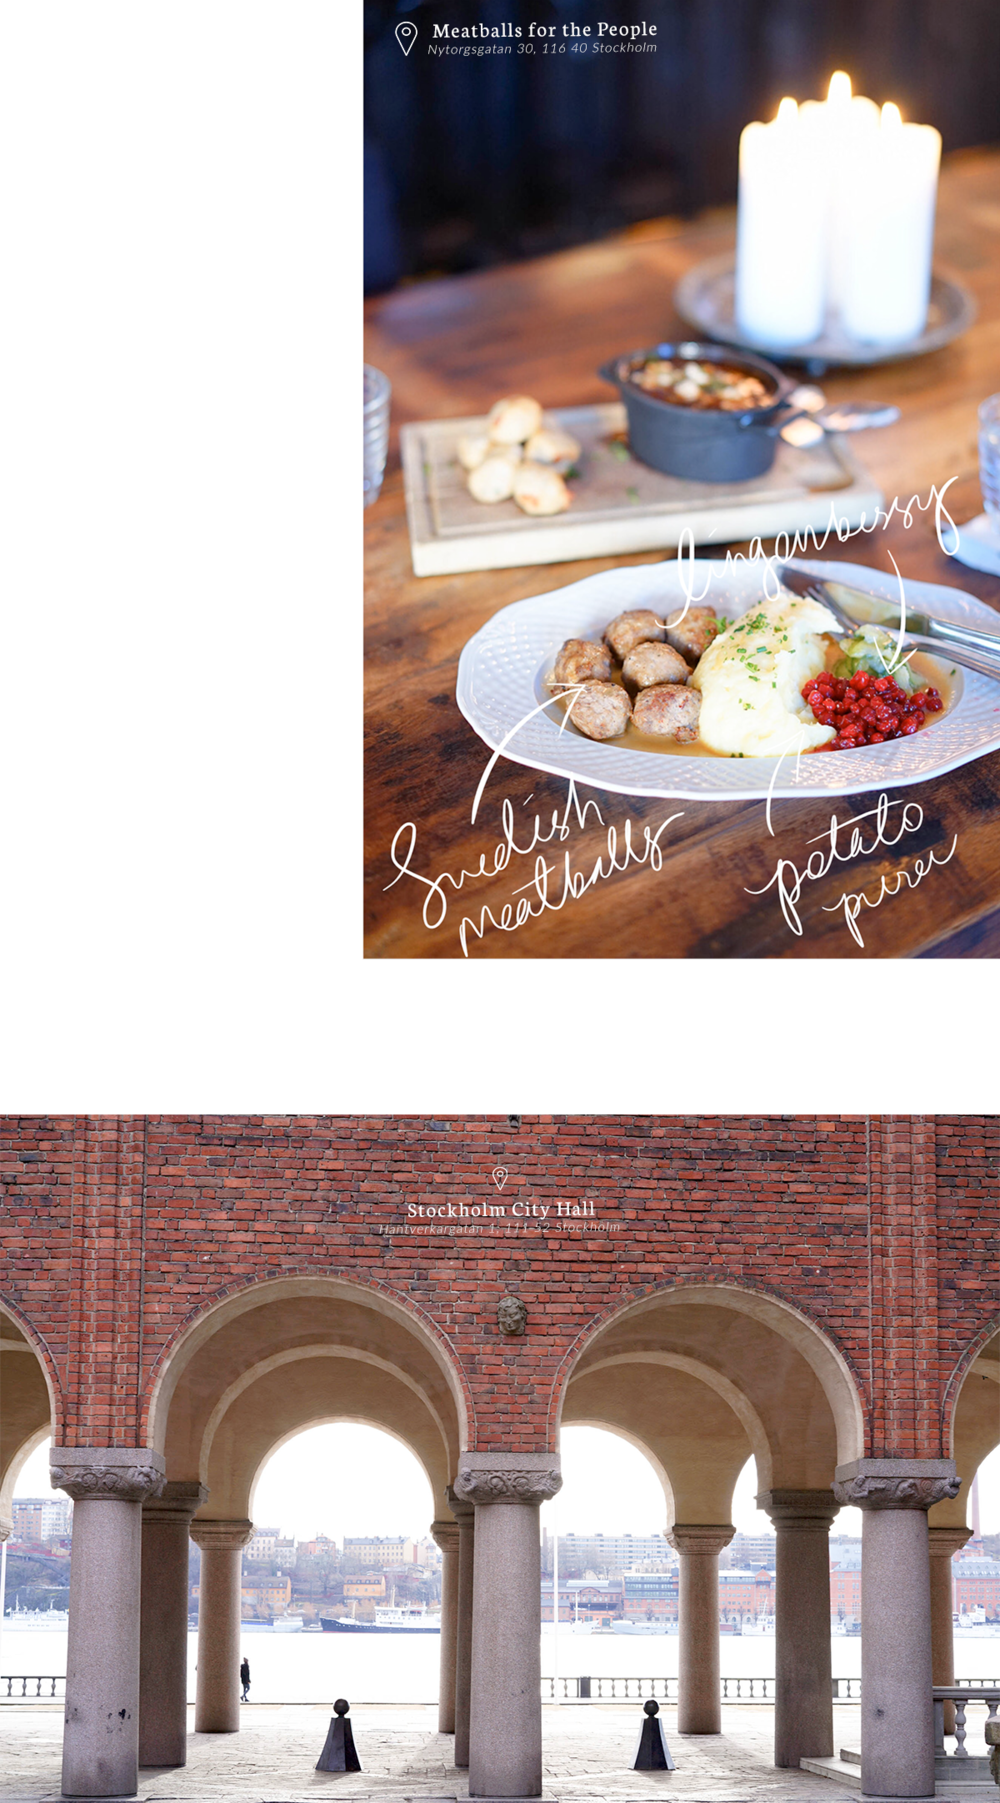 What to do in STOCKHOLM, Sweden? Meatballs for the people | Stockholm City Hall